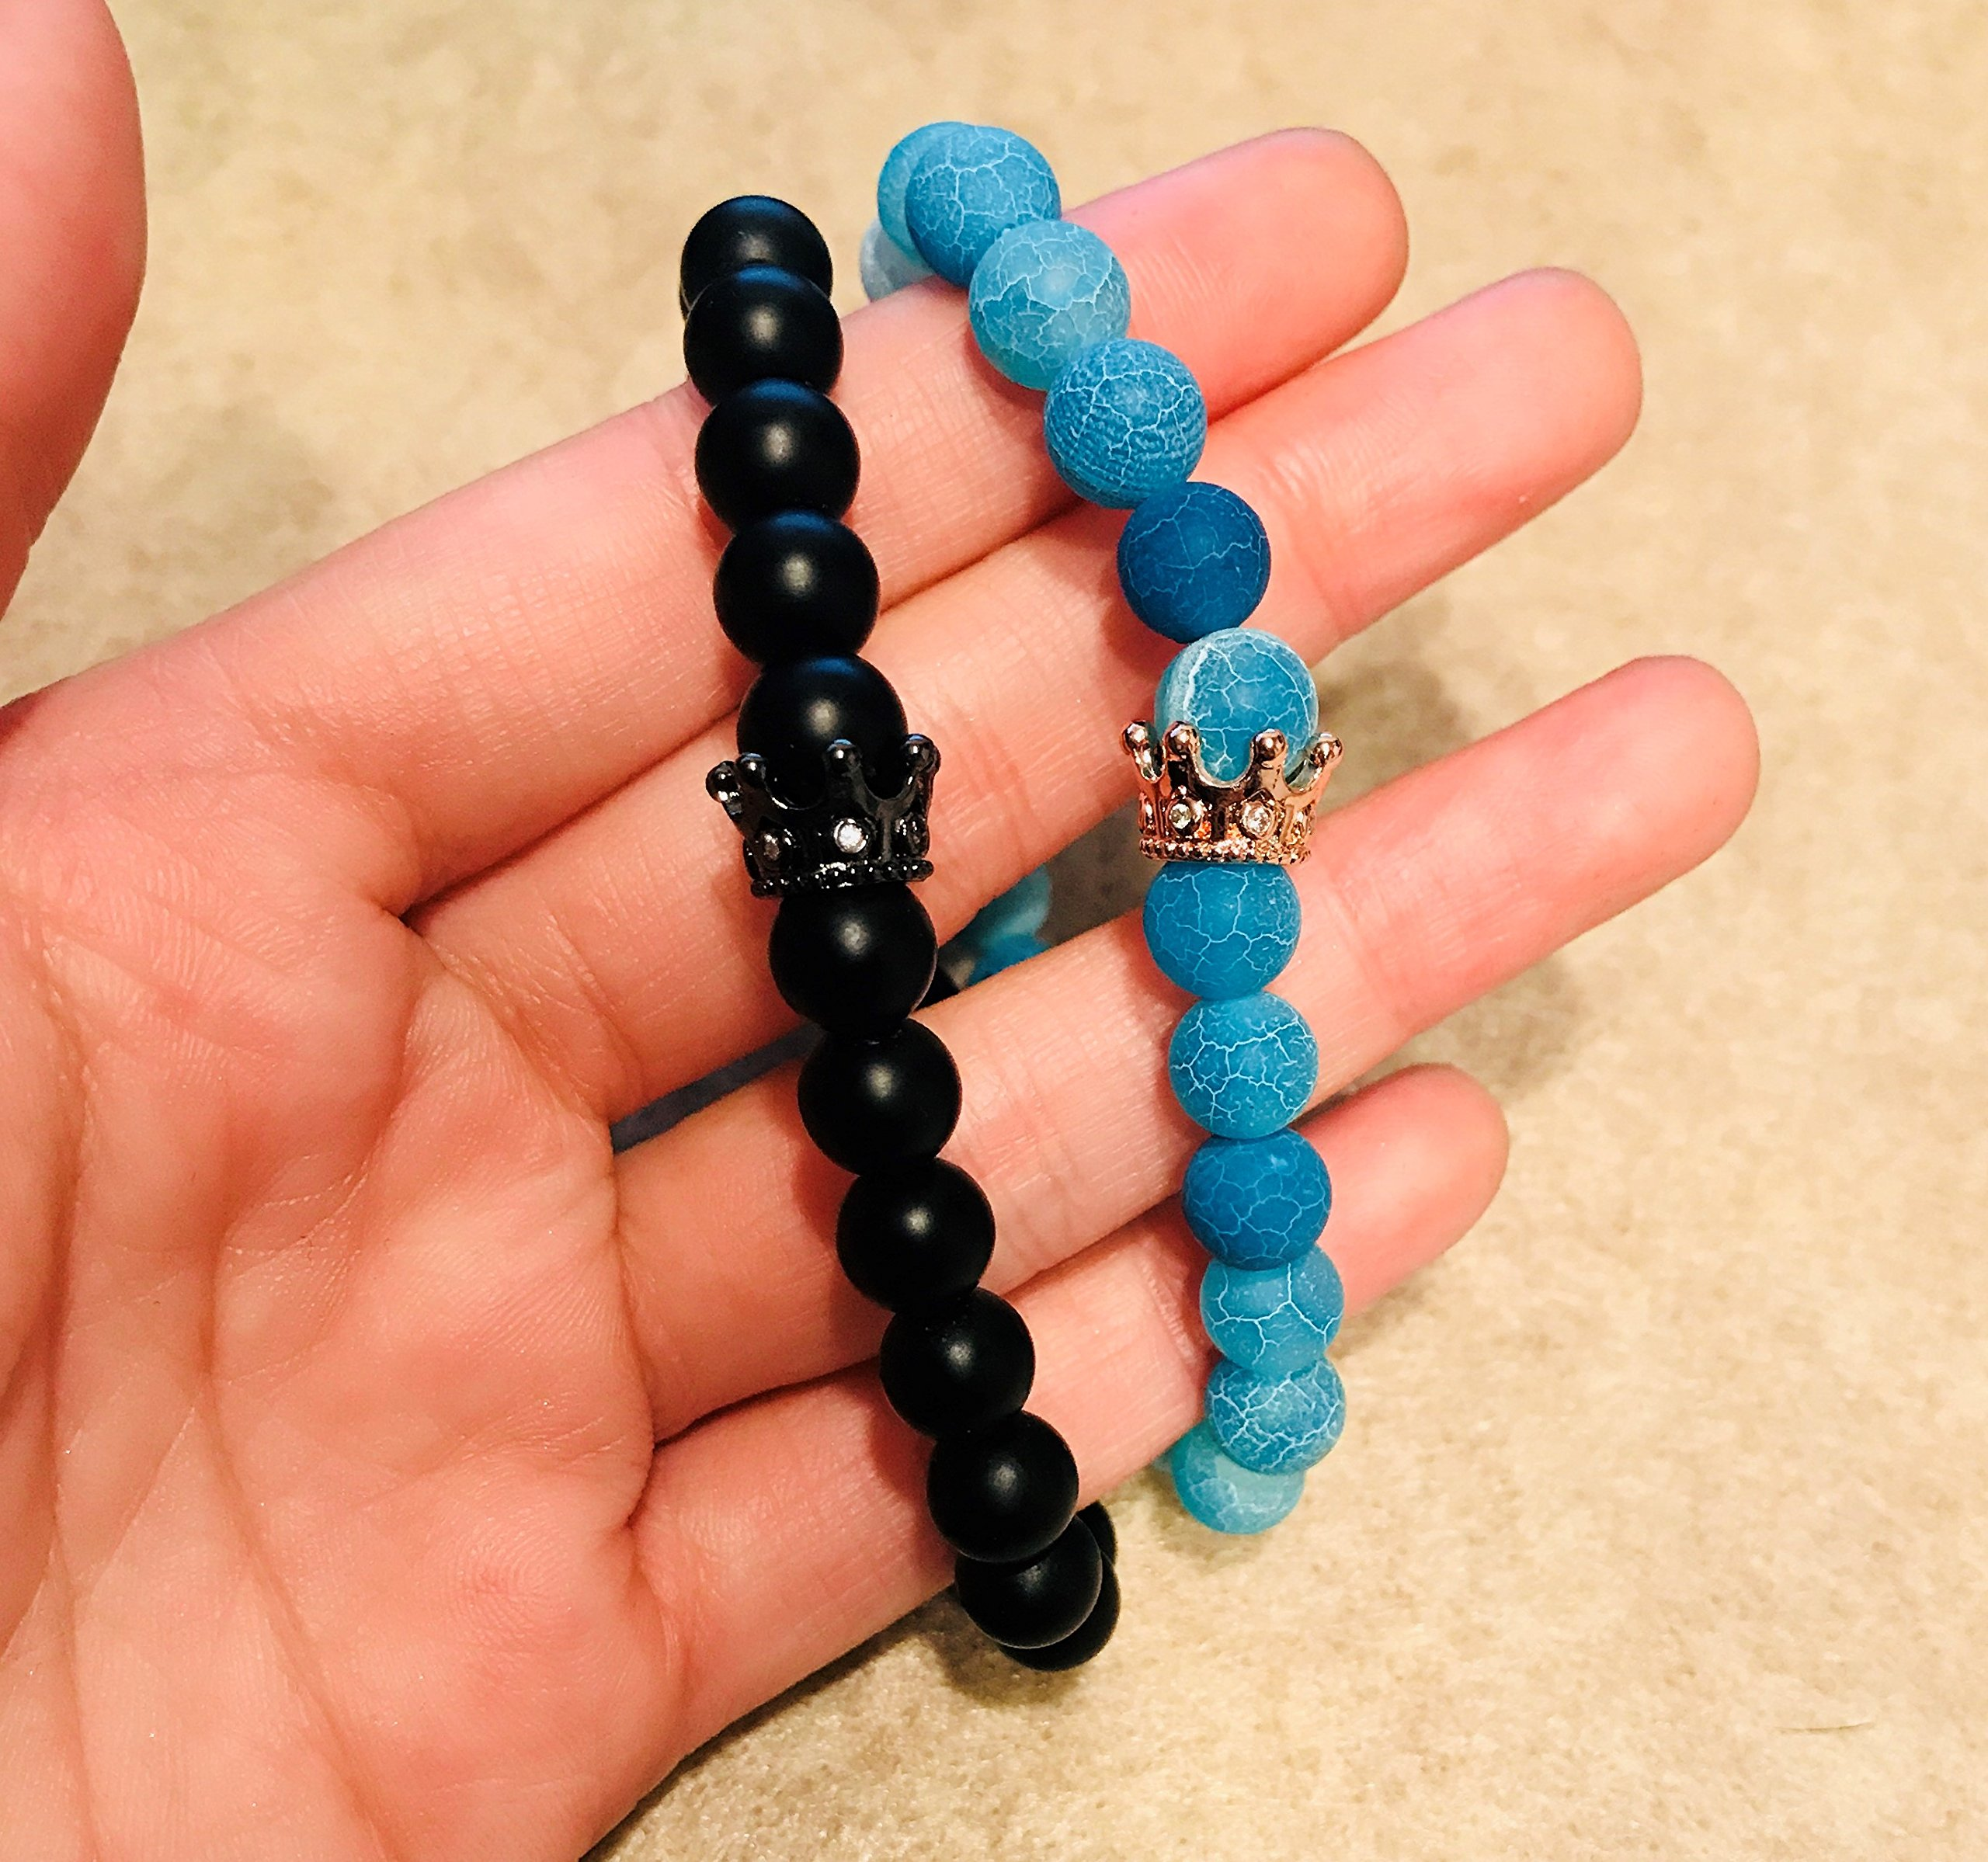 ISAACSONG.DESIGN Unisex Prayer Healing Round Natural Lava Turquoise Stone 8mm Beads Stretch Bracelet with Charms (Black Matte Agate & Blue Agate) by ISAACSONG.DESIGN (Image #6)